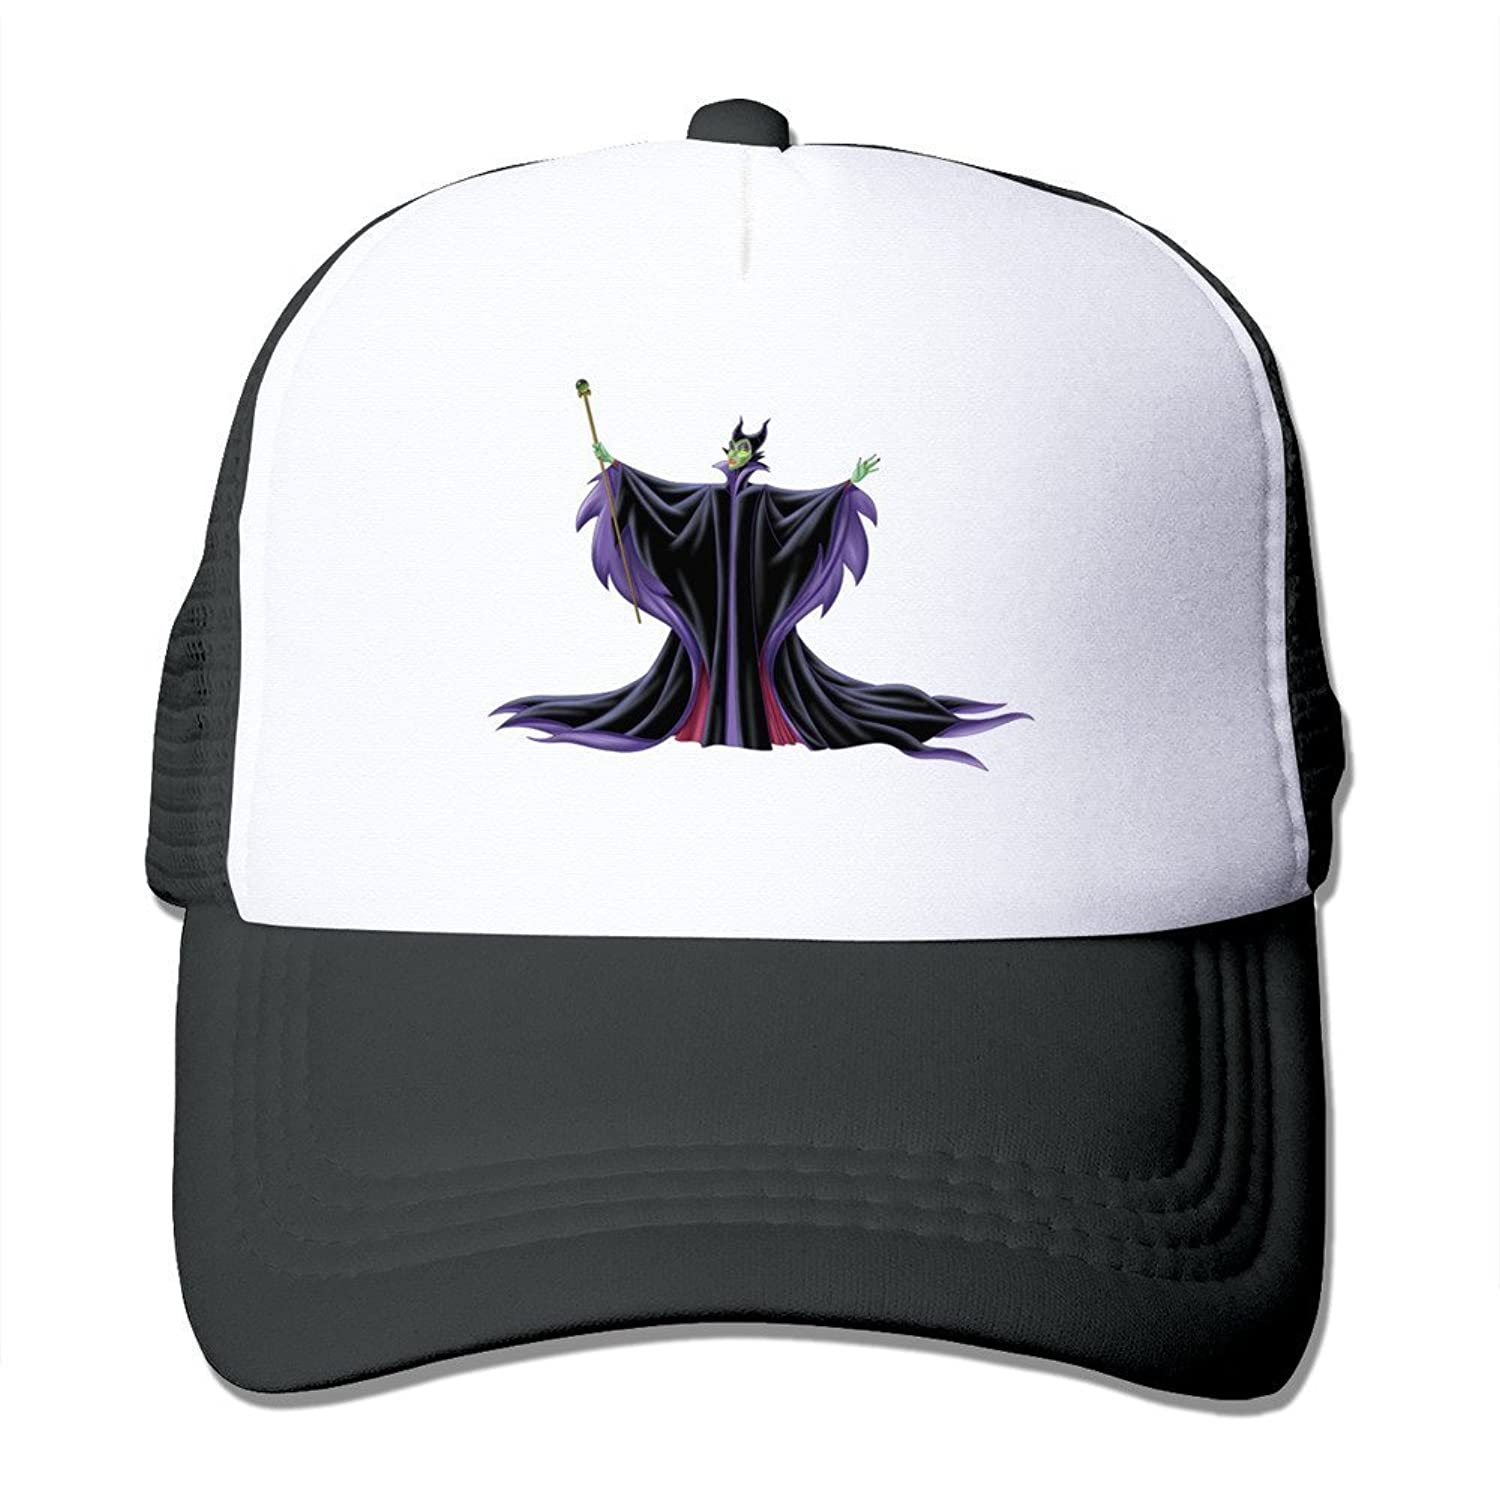 New Style Adult Unisex Beauty Maleficent 100% Nylon Mesh Caps One Size Fits Most Adjustable Cap